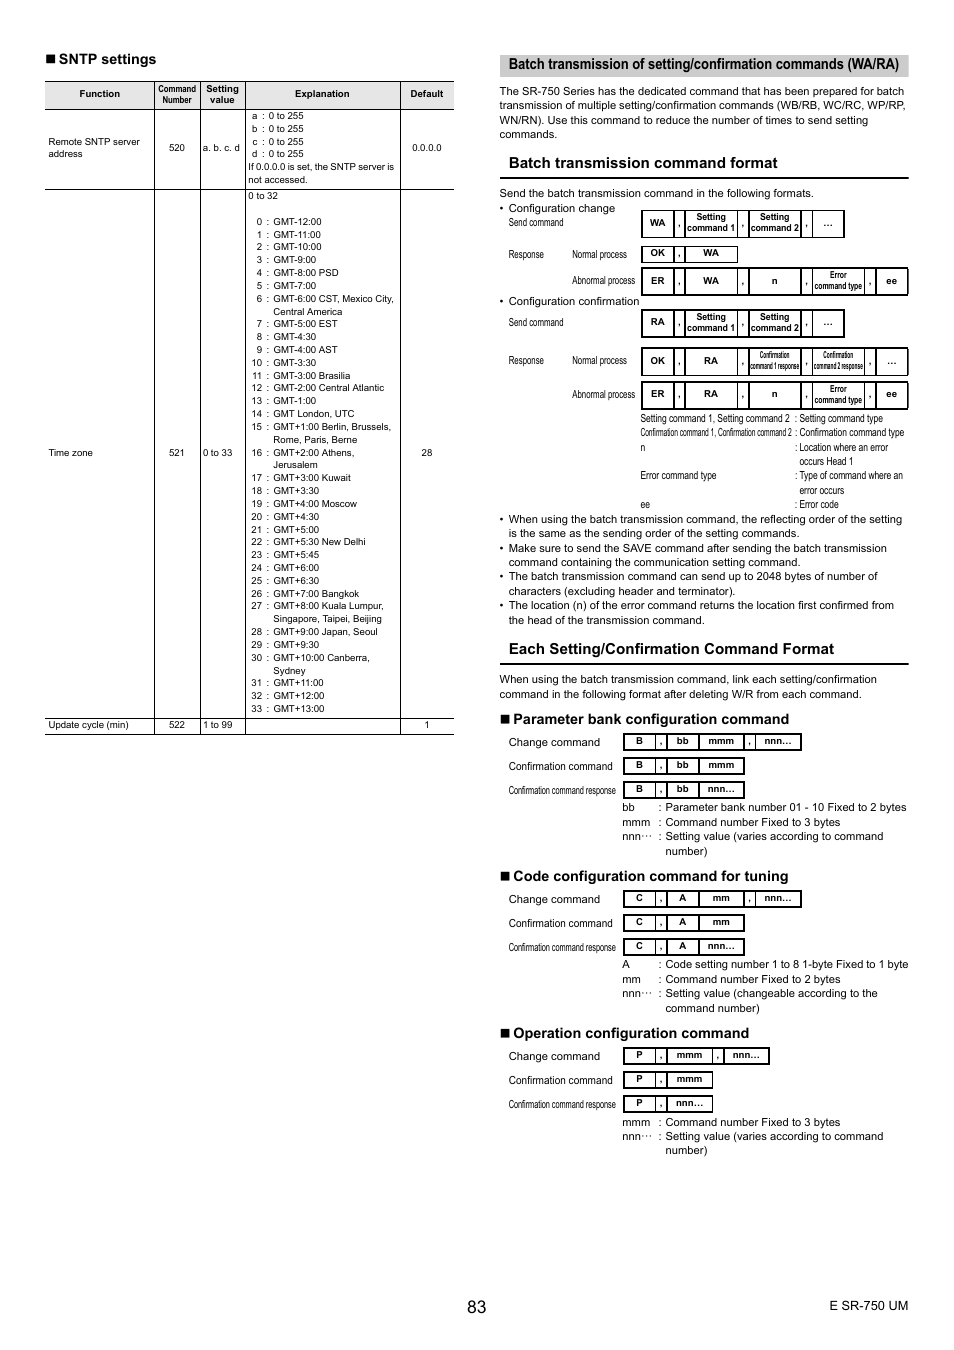 Batch transmission command format, Each setting